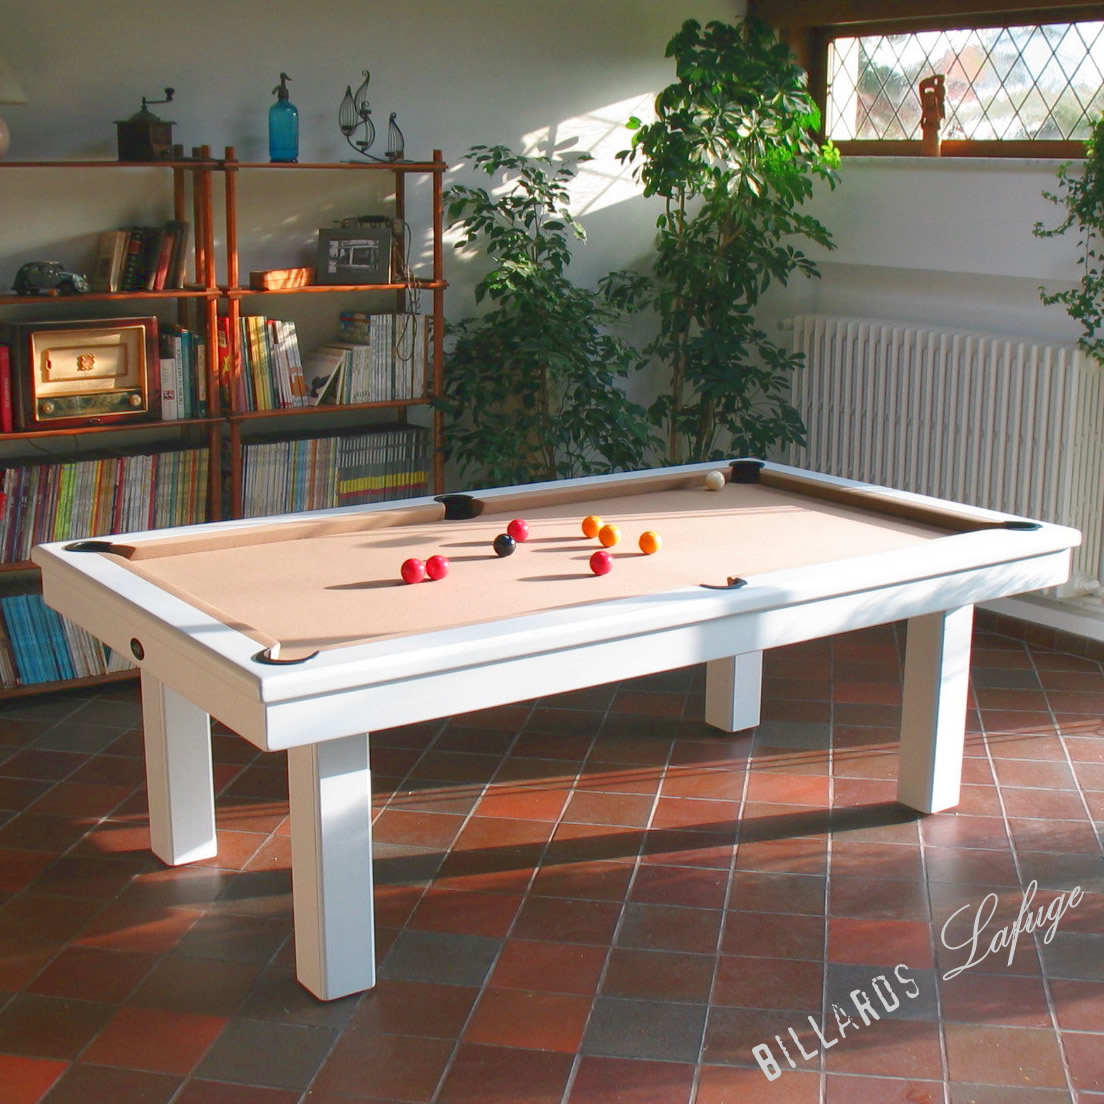 Pool Anglais Billards Lafuge